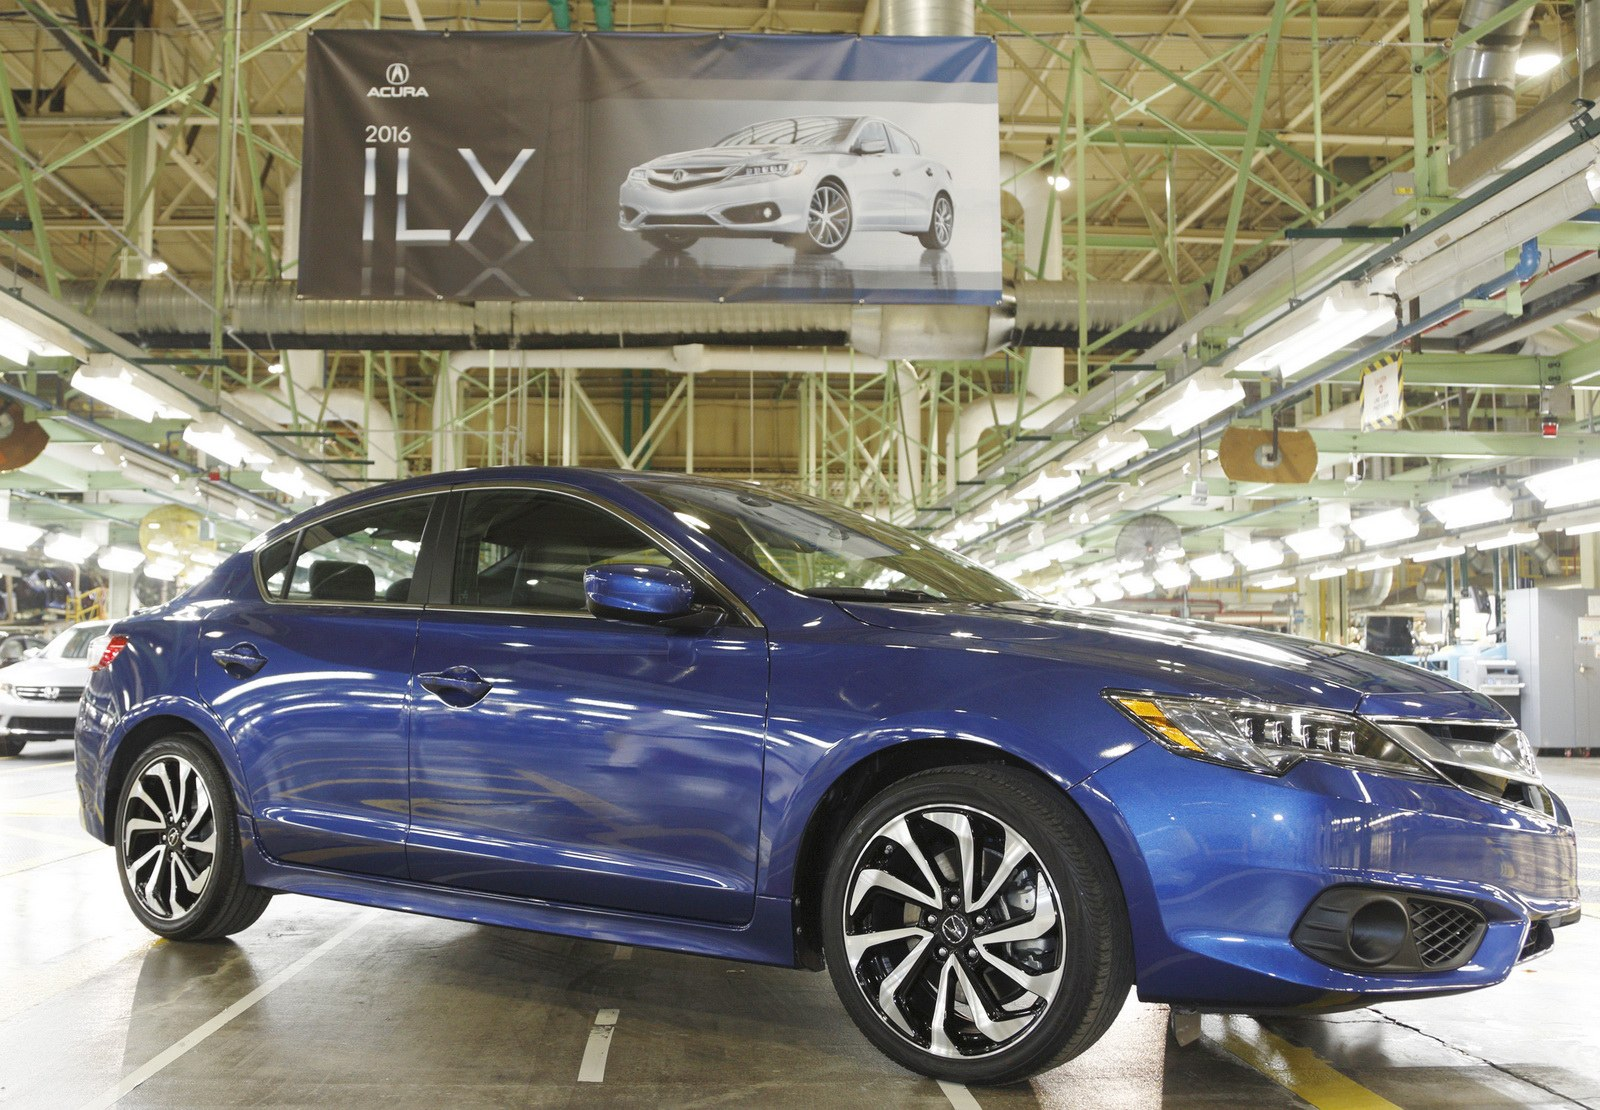 2016 Acura ILX begins production.